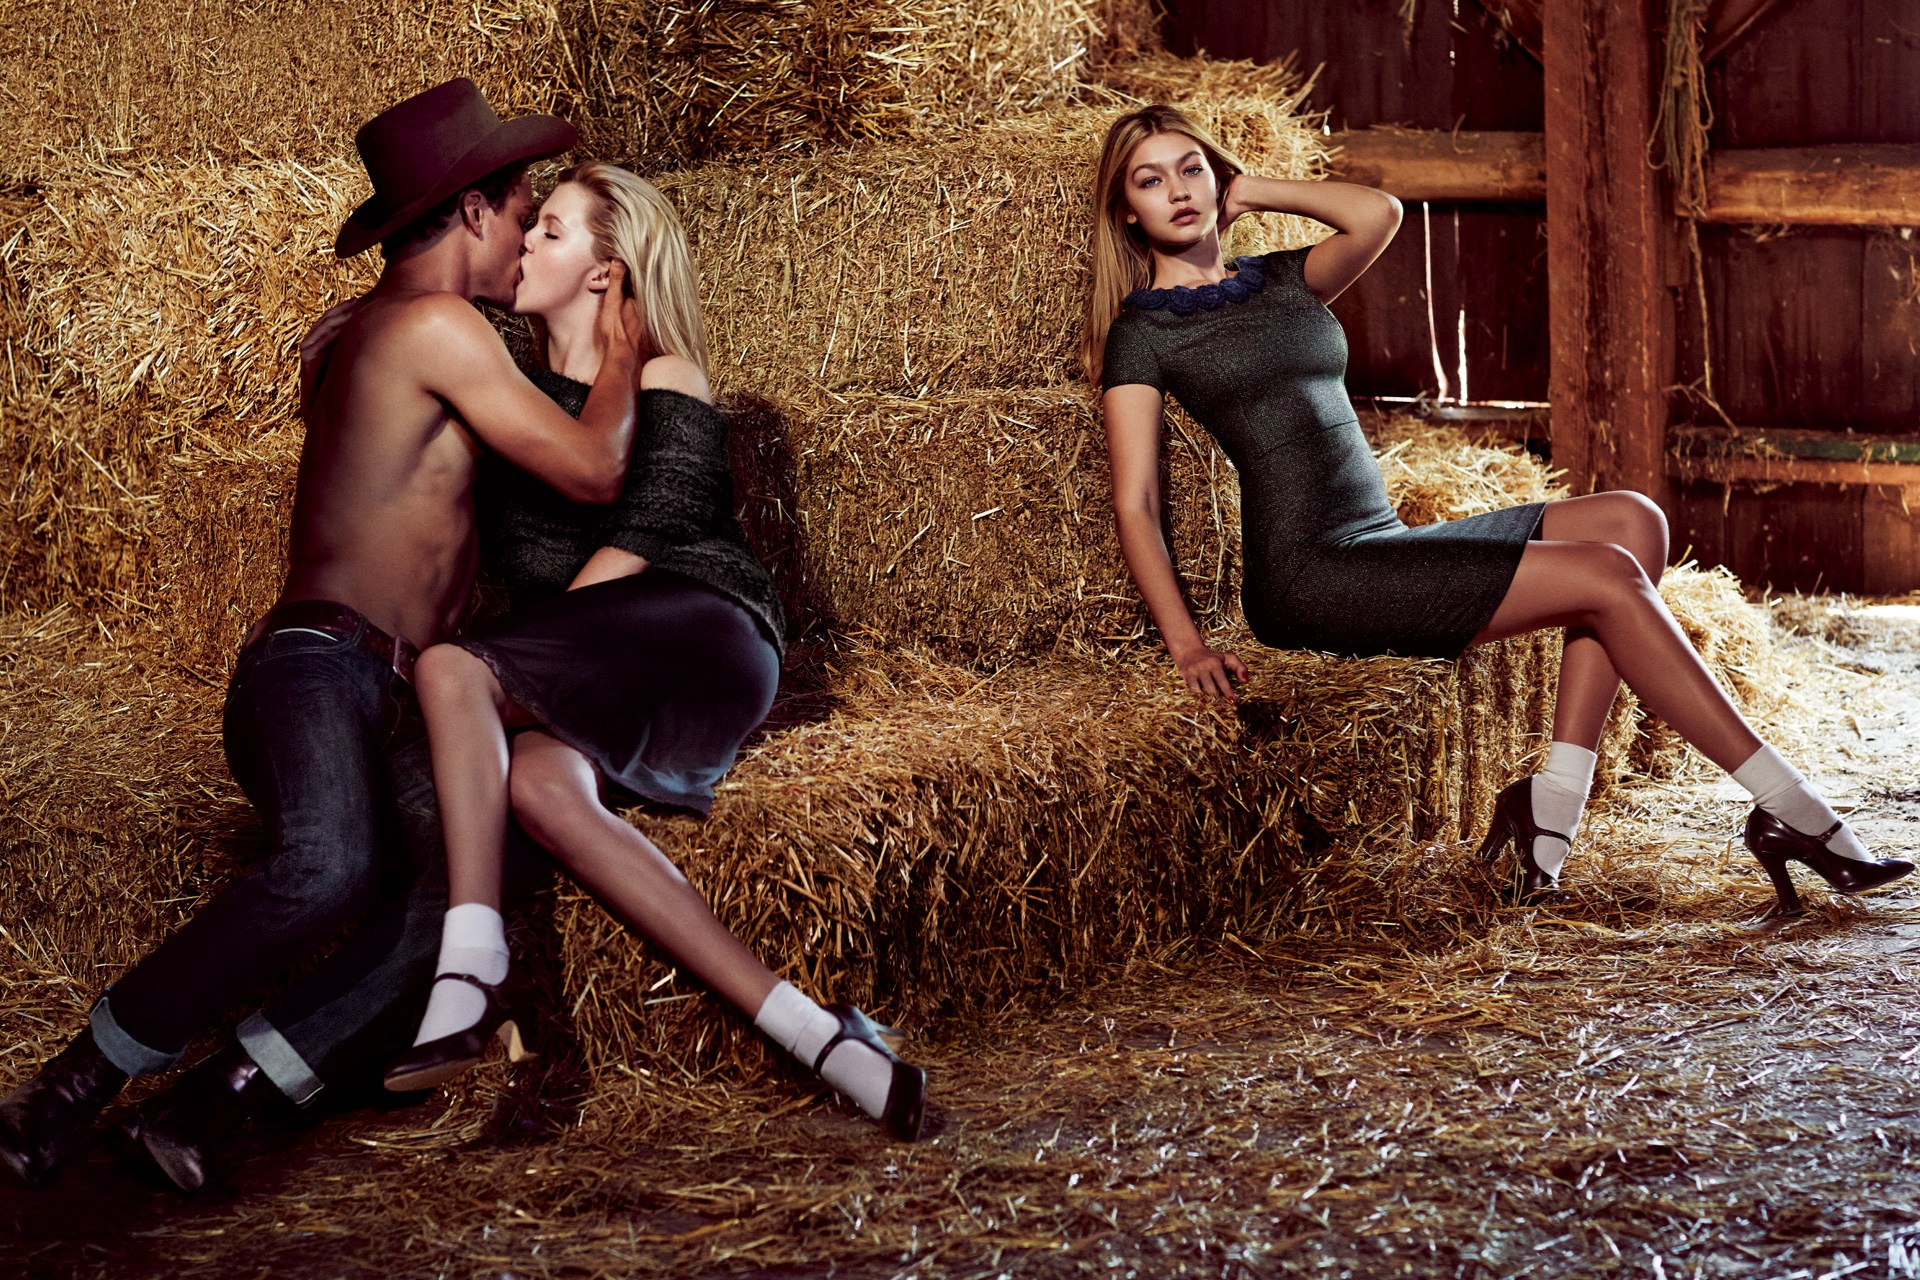 """Image <a href=""""http://www.vogue.co.uk/news/2014/07/22/sisley-pier-davoli-ireland-baldwin-interview-behind-the-scenes-campaign"""">via</a>."""